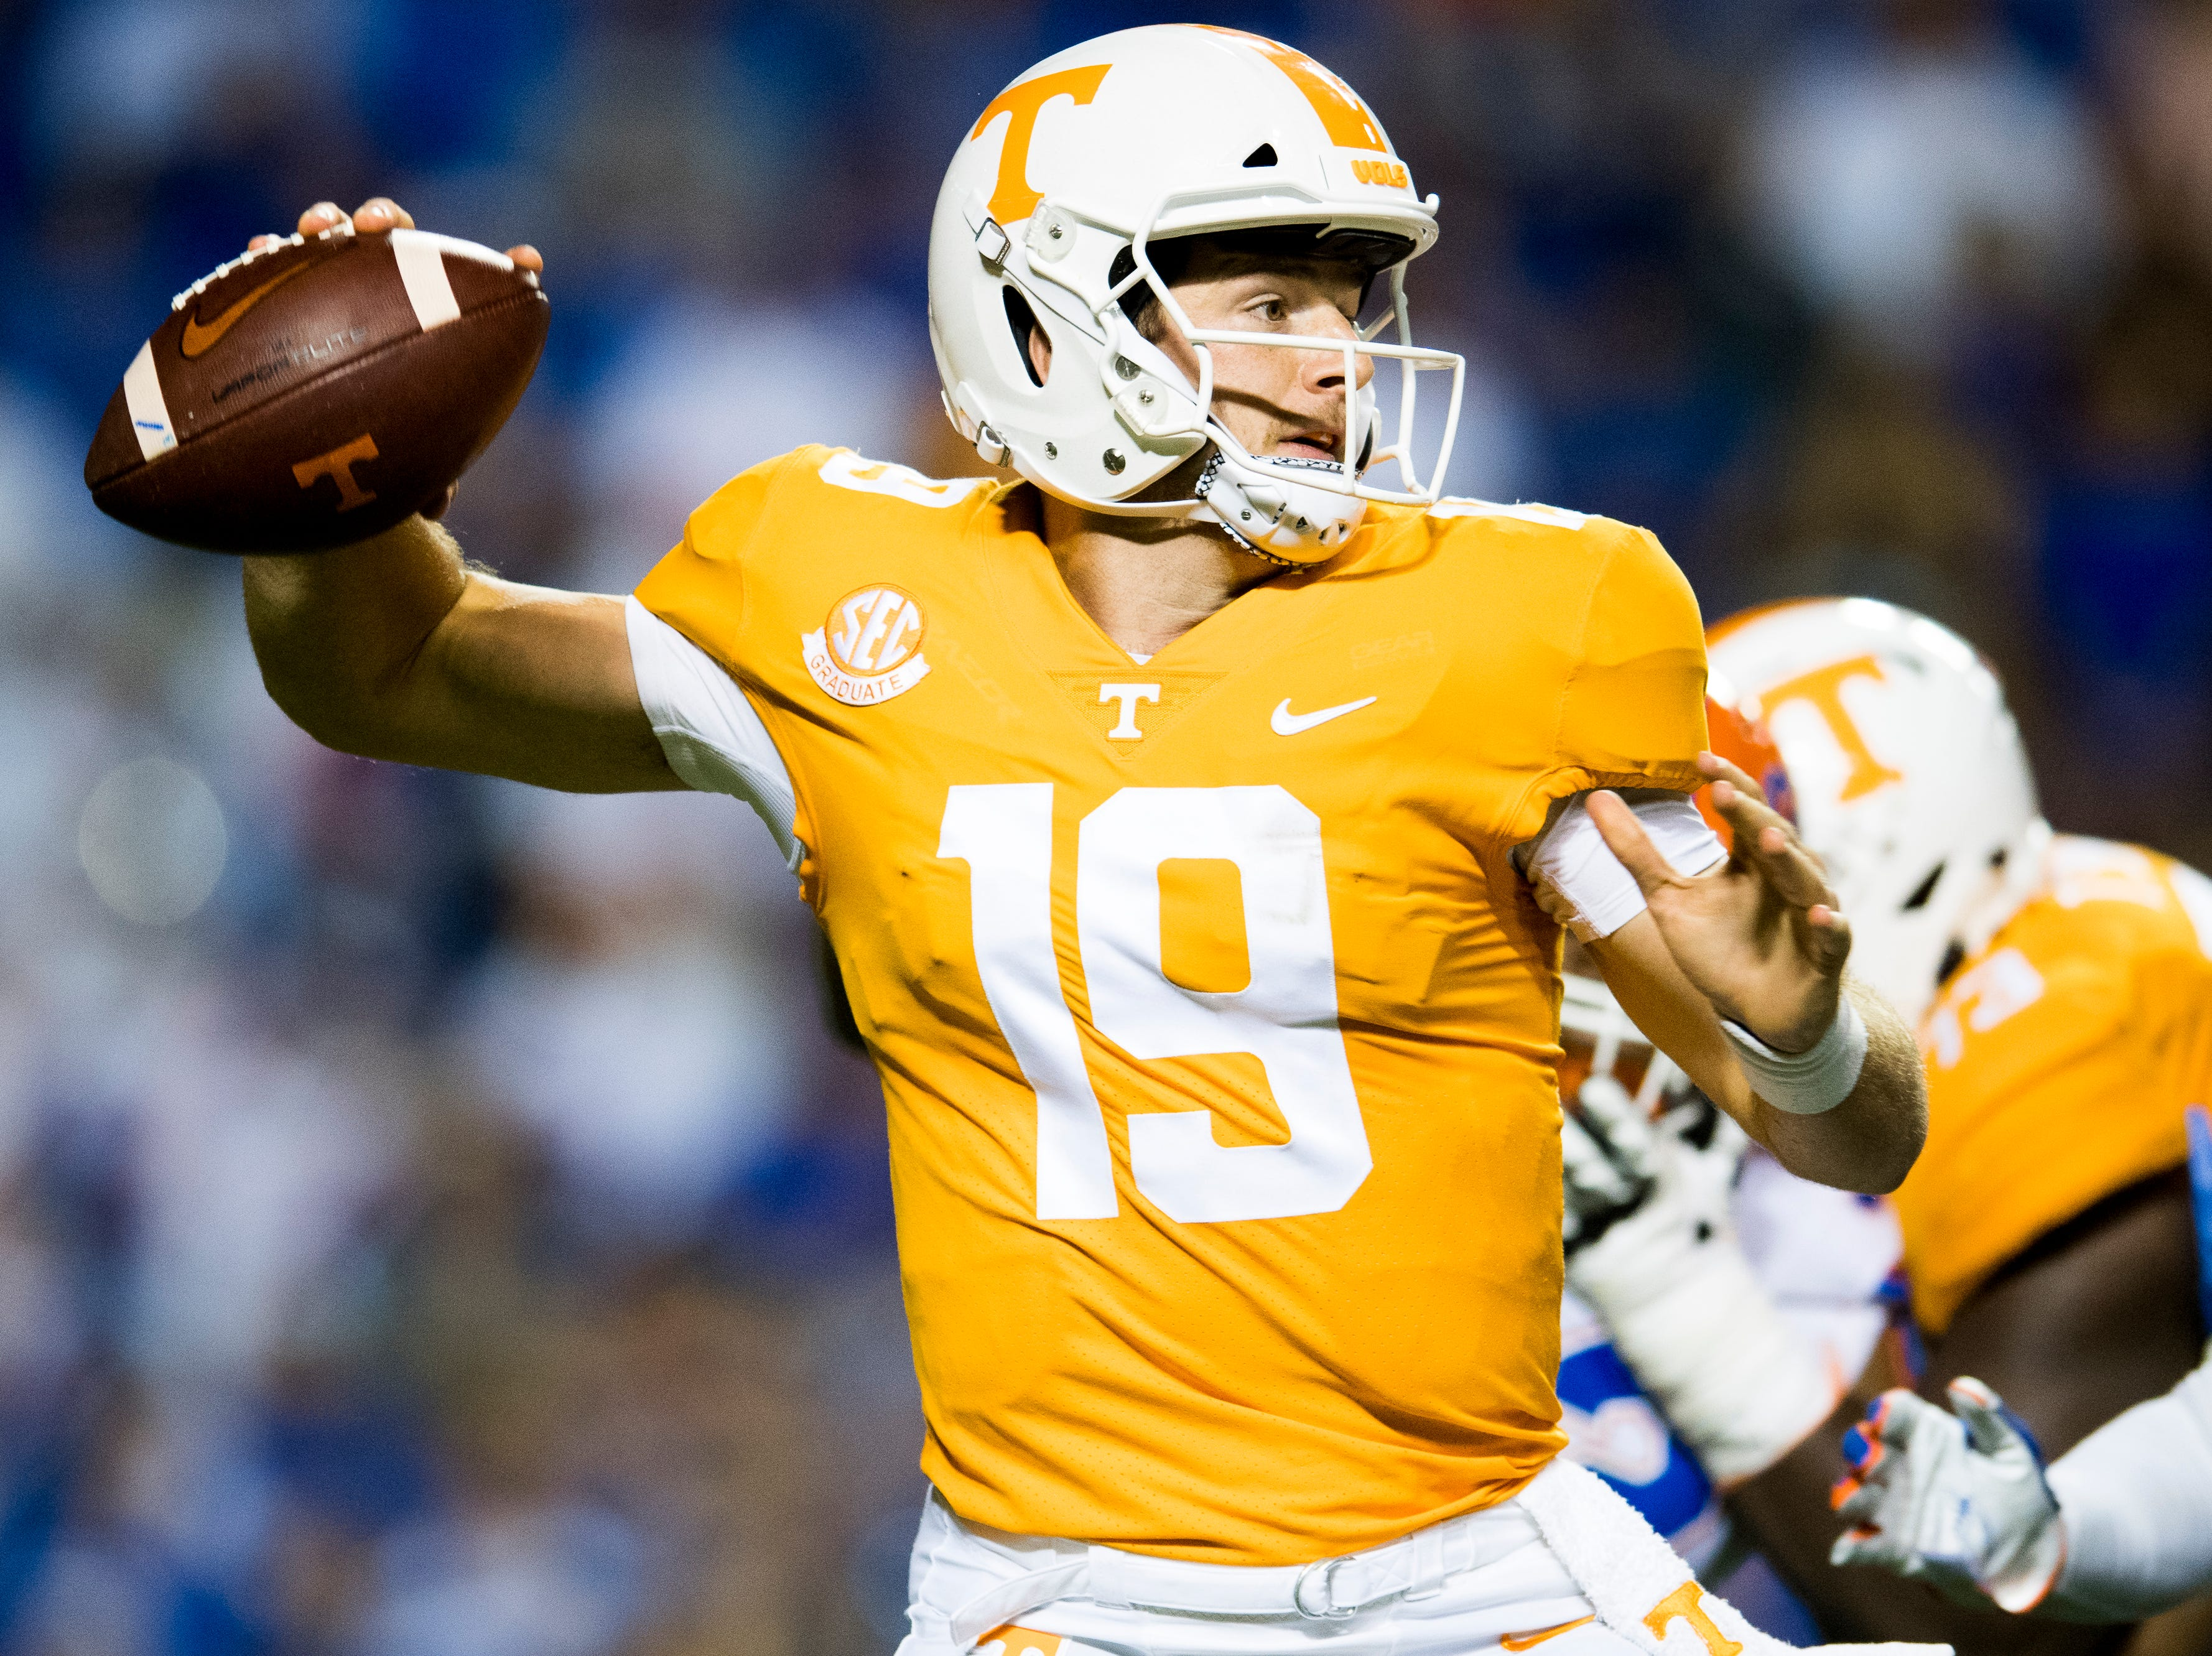 Tennessee quarterback Keller Chryst (19) lines up a pass during a game between Tennessee and Florida at Neyland Stadium in Knoxville, Tennessee on Saturday, September 22, 2018.